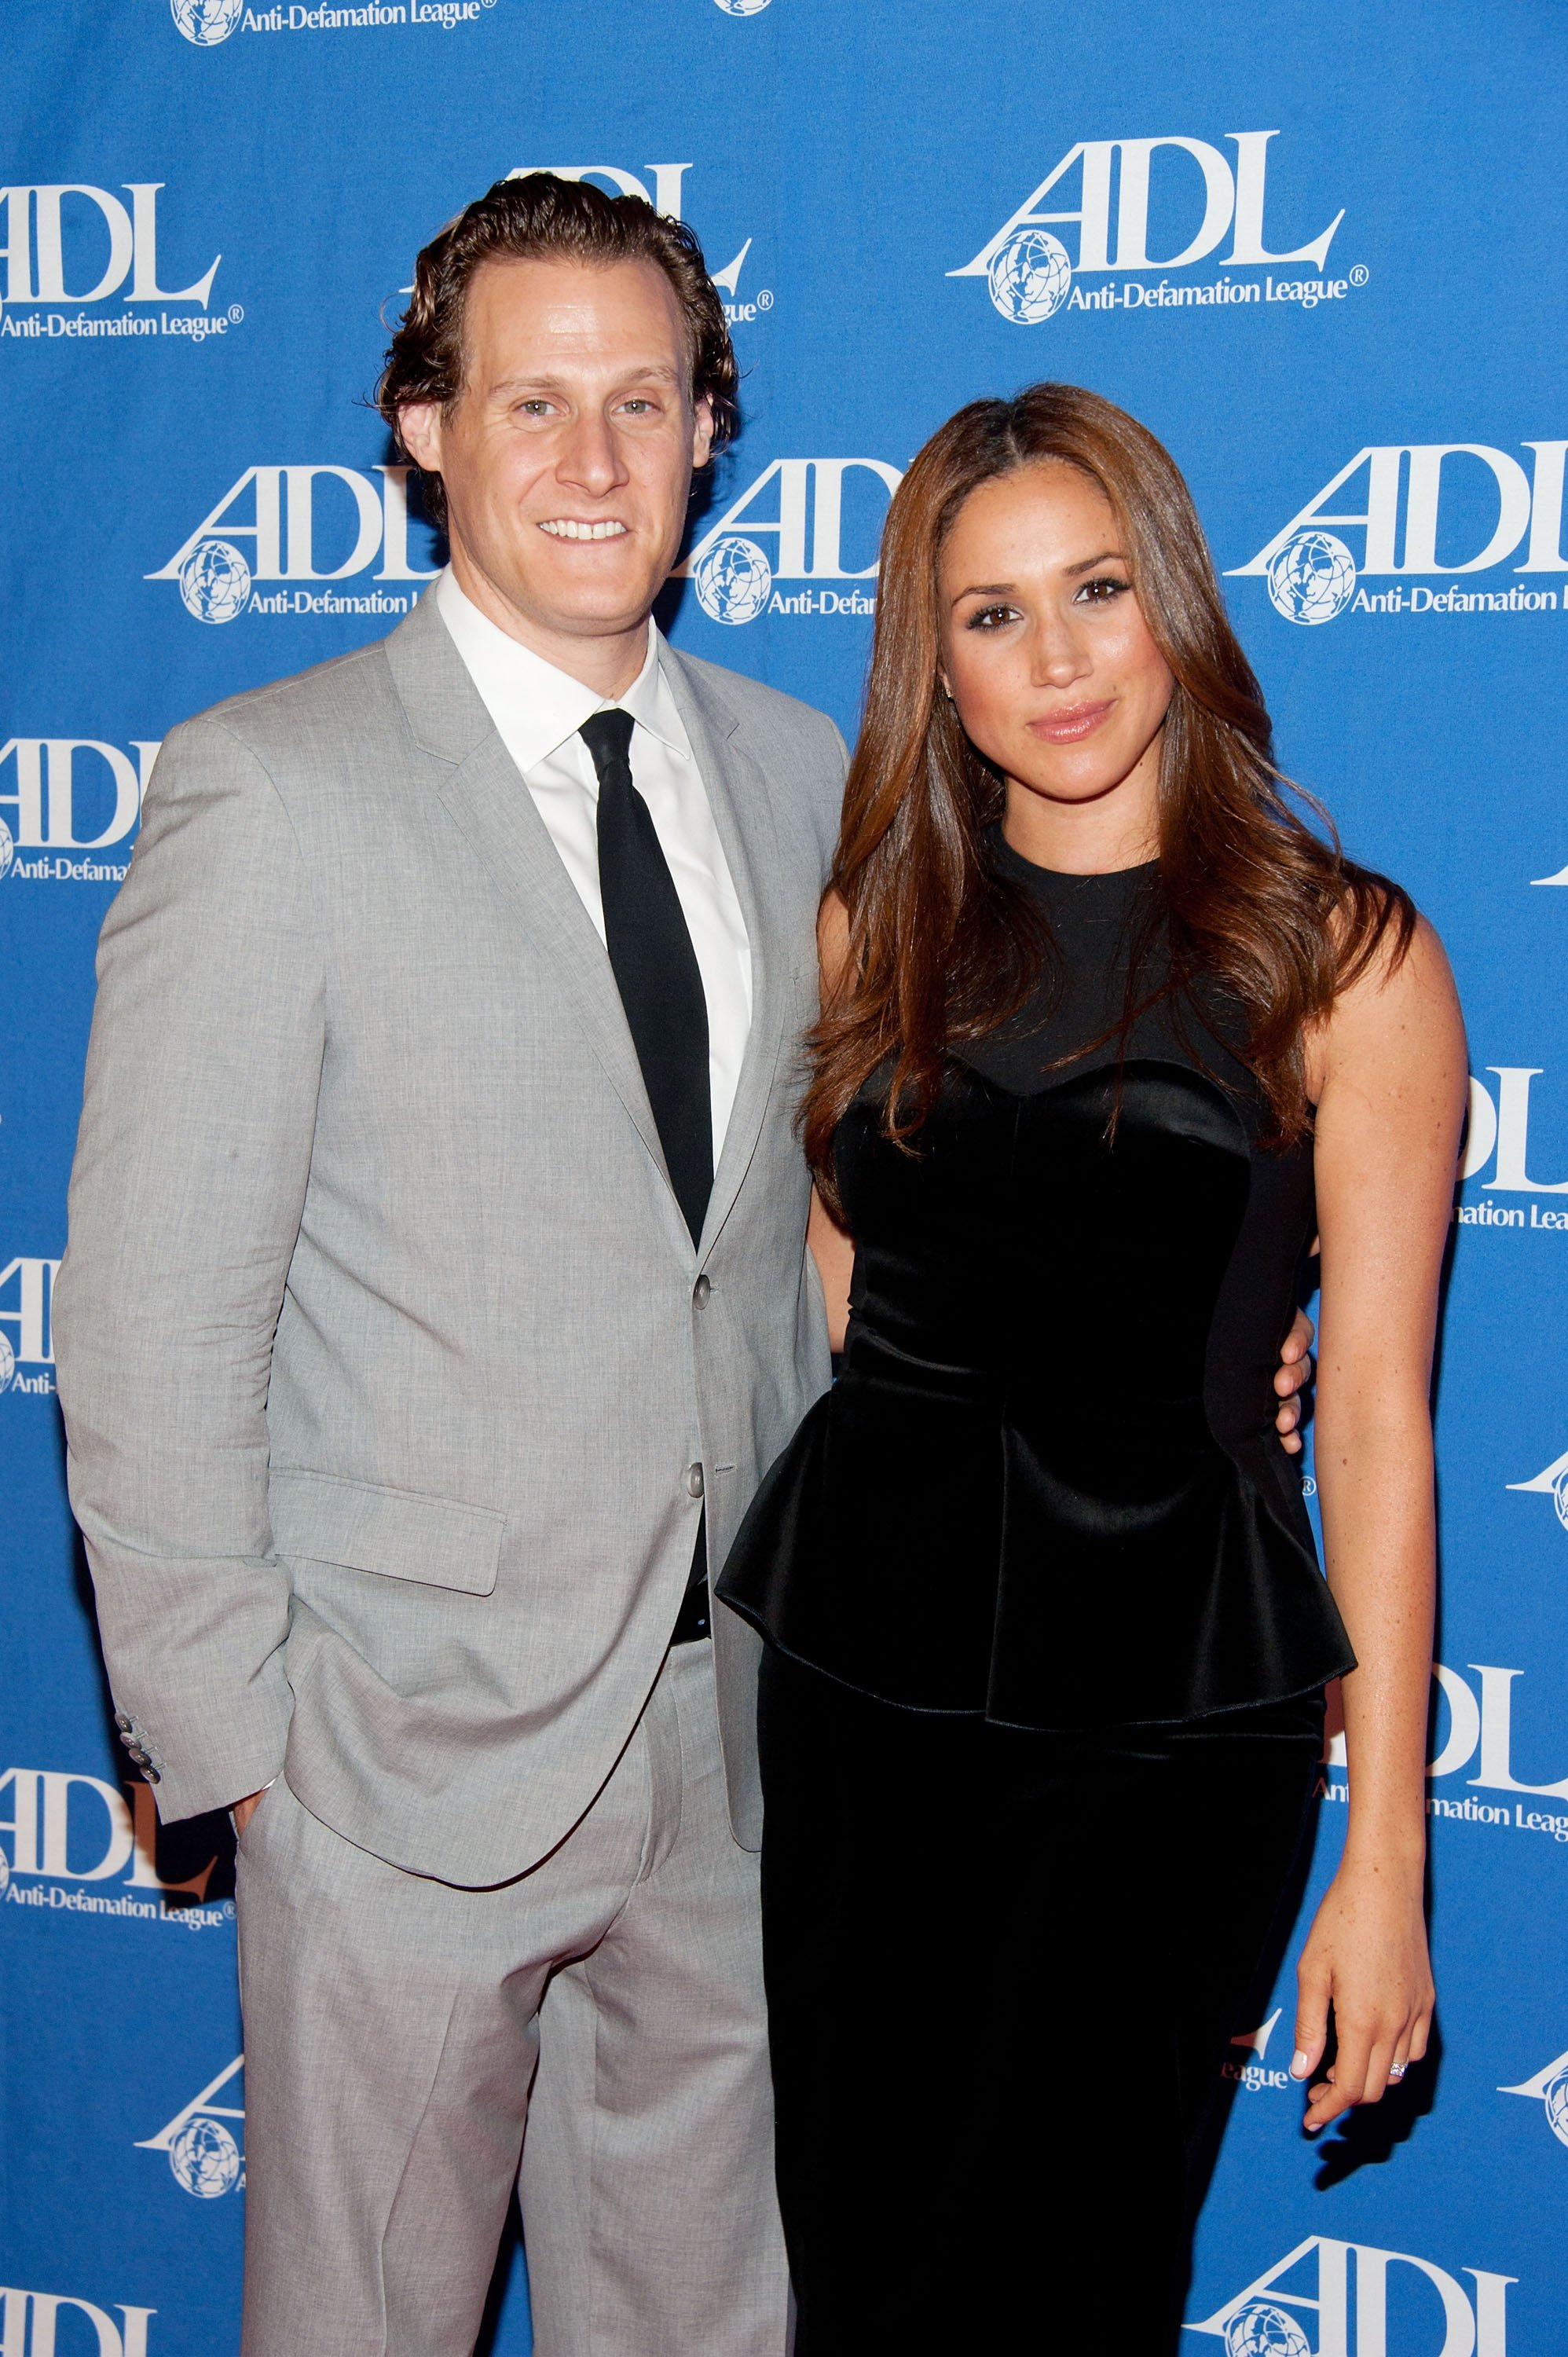 Meghan Markle und Trevor Engelson treffen am 11. Oktober 2011 beim Abendessen der Anti-Defamation League Entertainment Industry Awards im Beverly Hilton in Beverly Hills, Kalifornien, ein. | Quelle: Getty Images